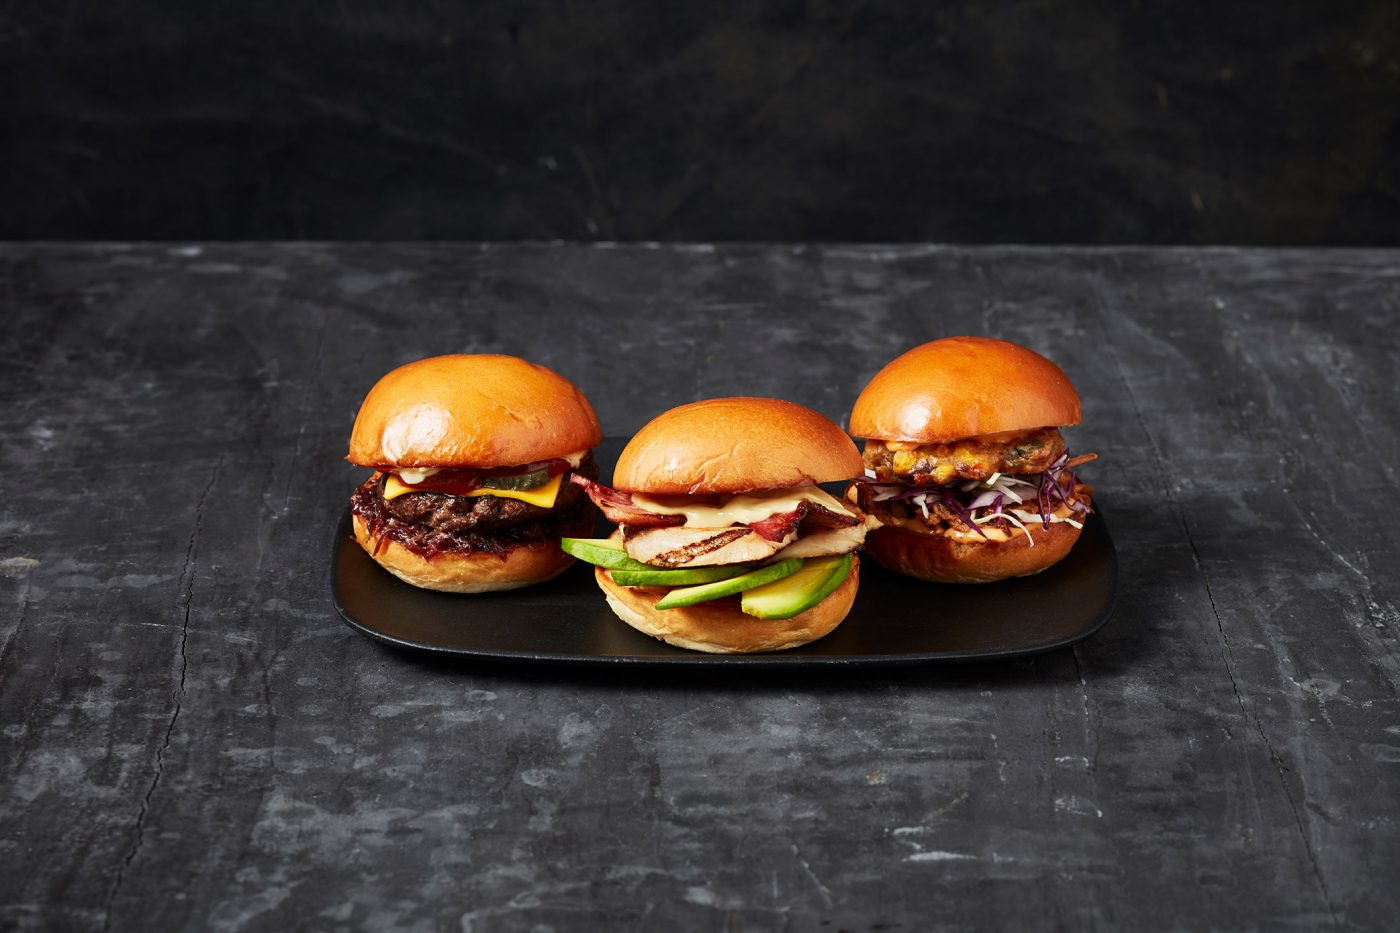 HOYTS LUX LAUNCH NEW MENU BY CELEBRITY CHEF MANU FEILDEL